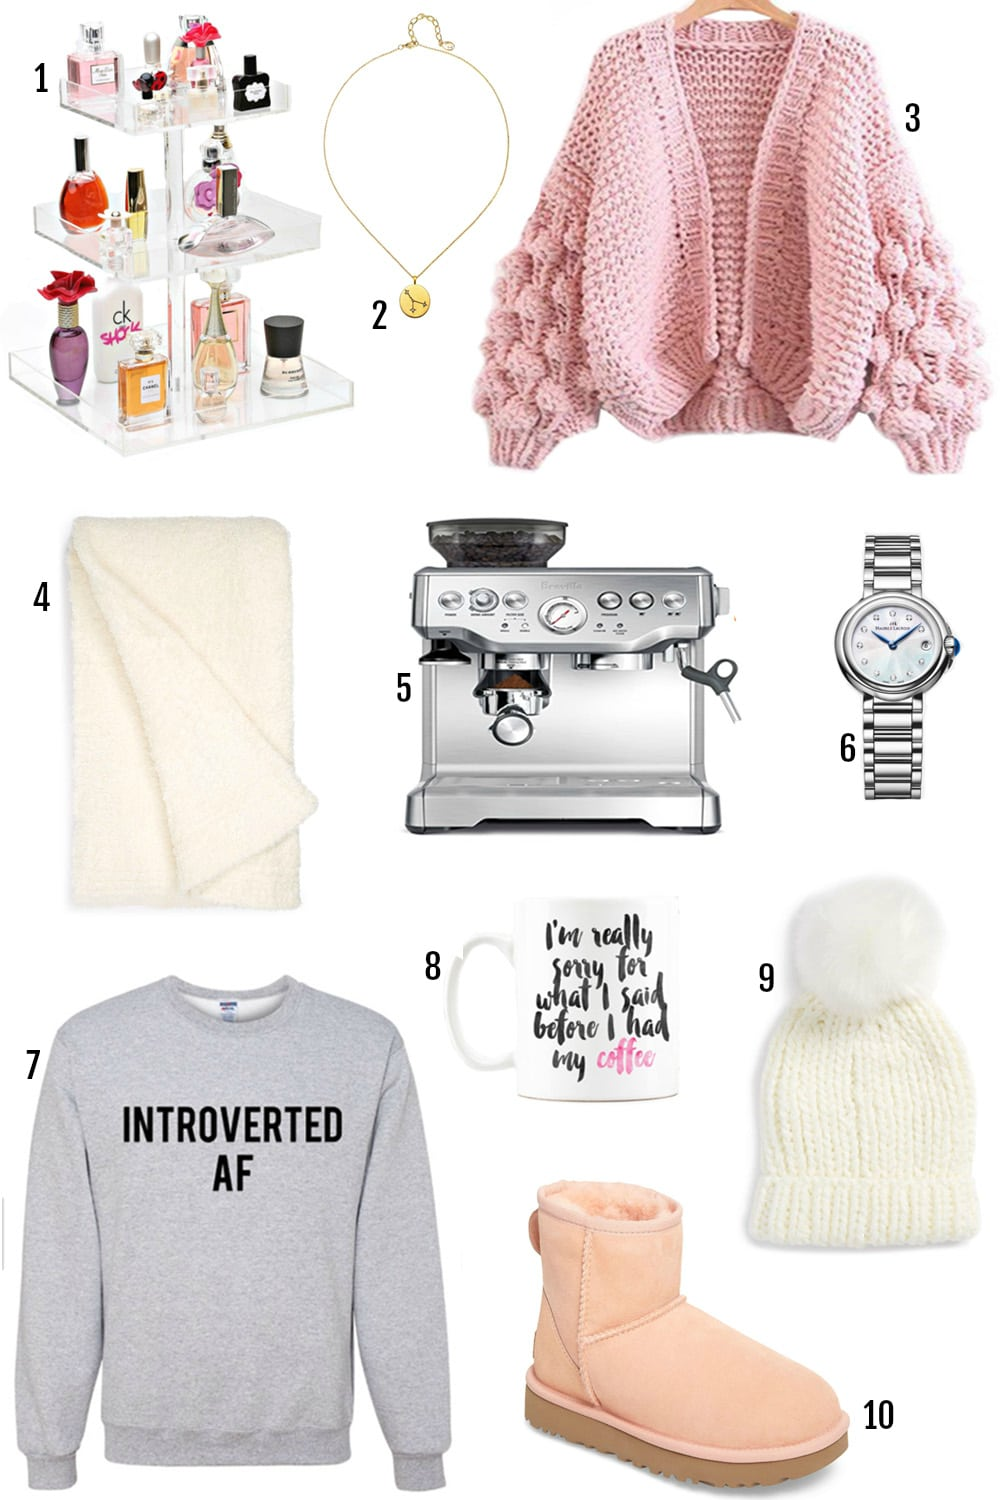 Gifts for introverts by Michelle Kehoe of Mash Elle | pom pom beanie | introverted AF graphic tee | personalized cursive mug | acrylic makeup organizer | astrology necklace gift